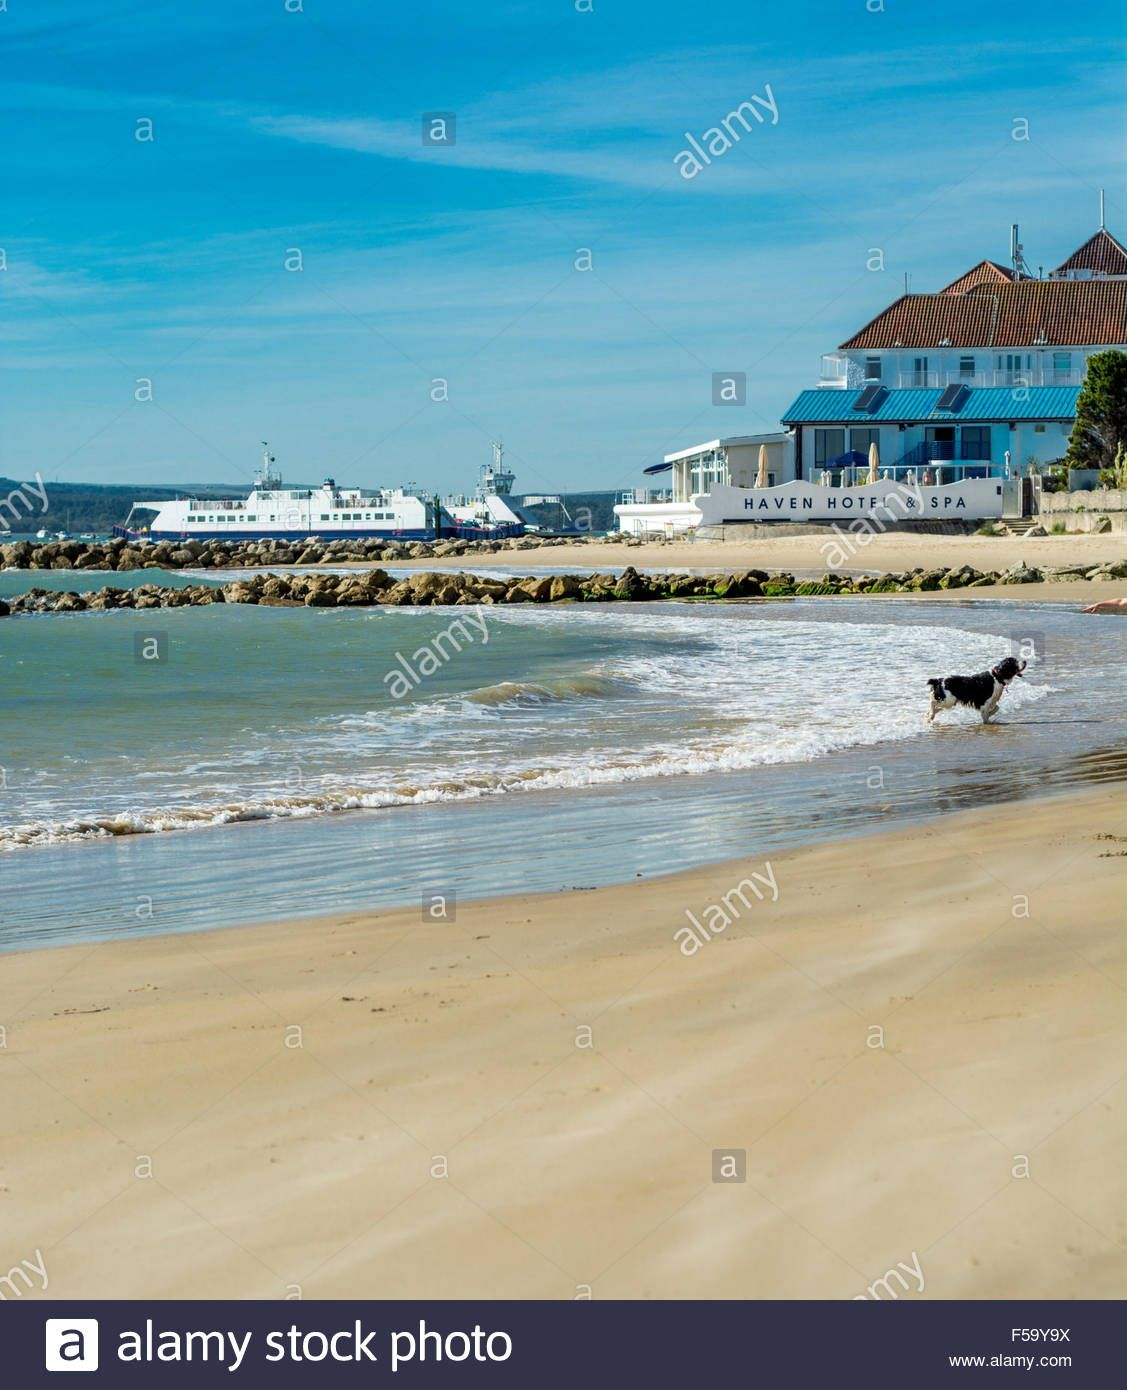 Stock Photo View From The Beach At Sandbanks Poole Dorset Uk Taken On 29th September 2015 Beautiful Places On Earth Dorset Photo